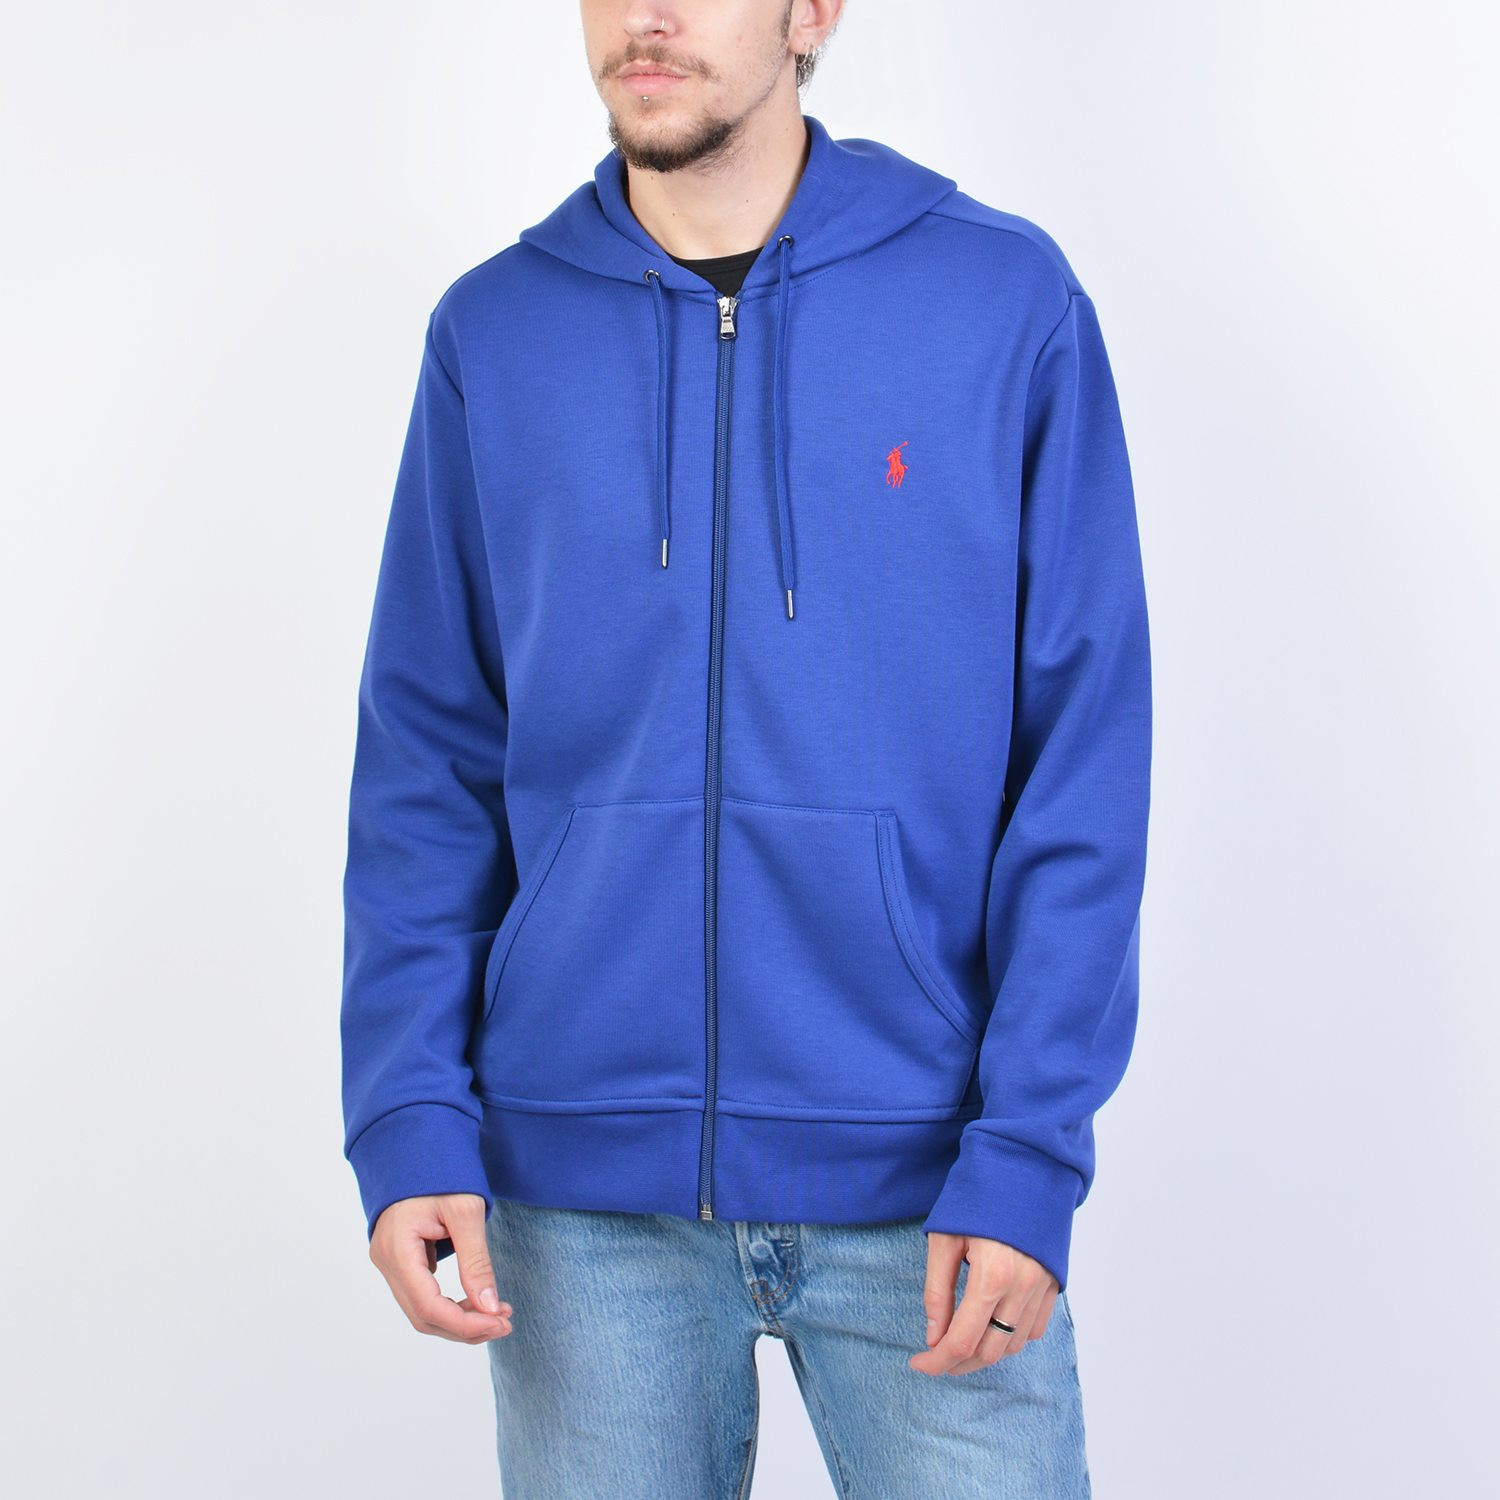 Polo Ralph Lauren Double-Knit Hoodie - Ανδρική Ζακέτα (9000041407_42107)